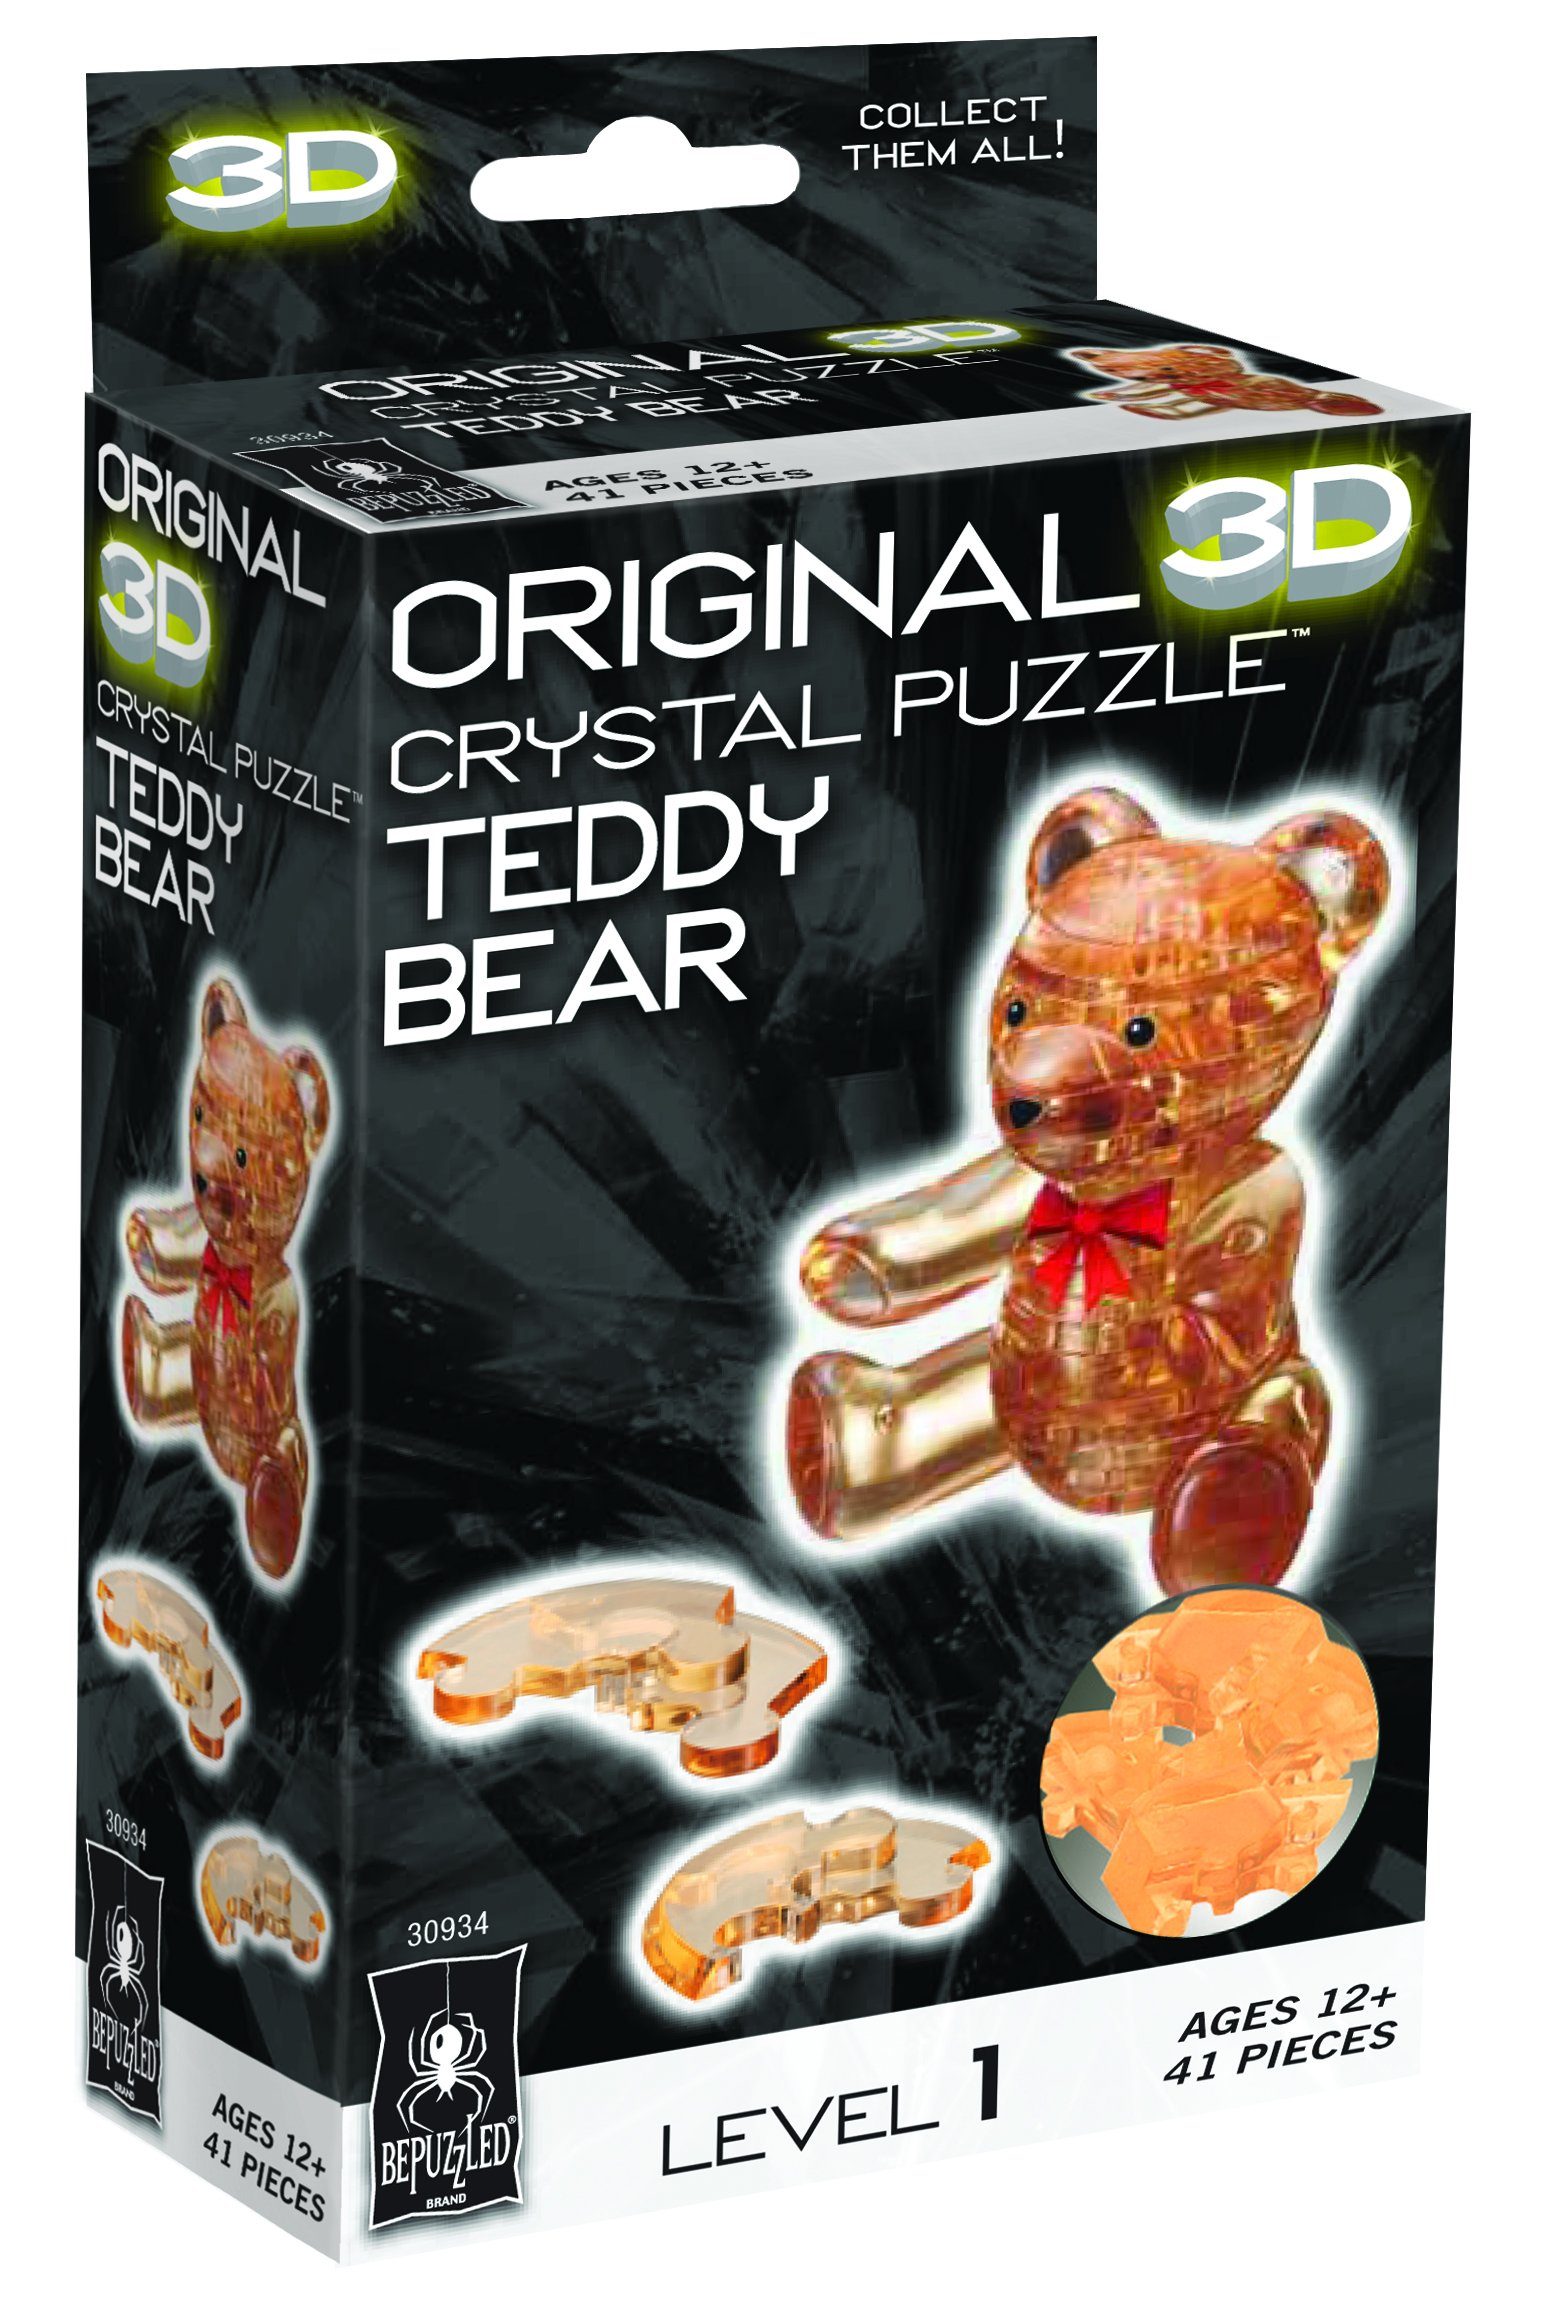 original 3d crystal puzzle teddy bear instructions